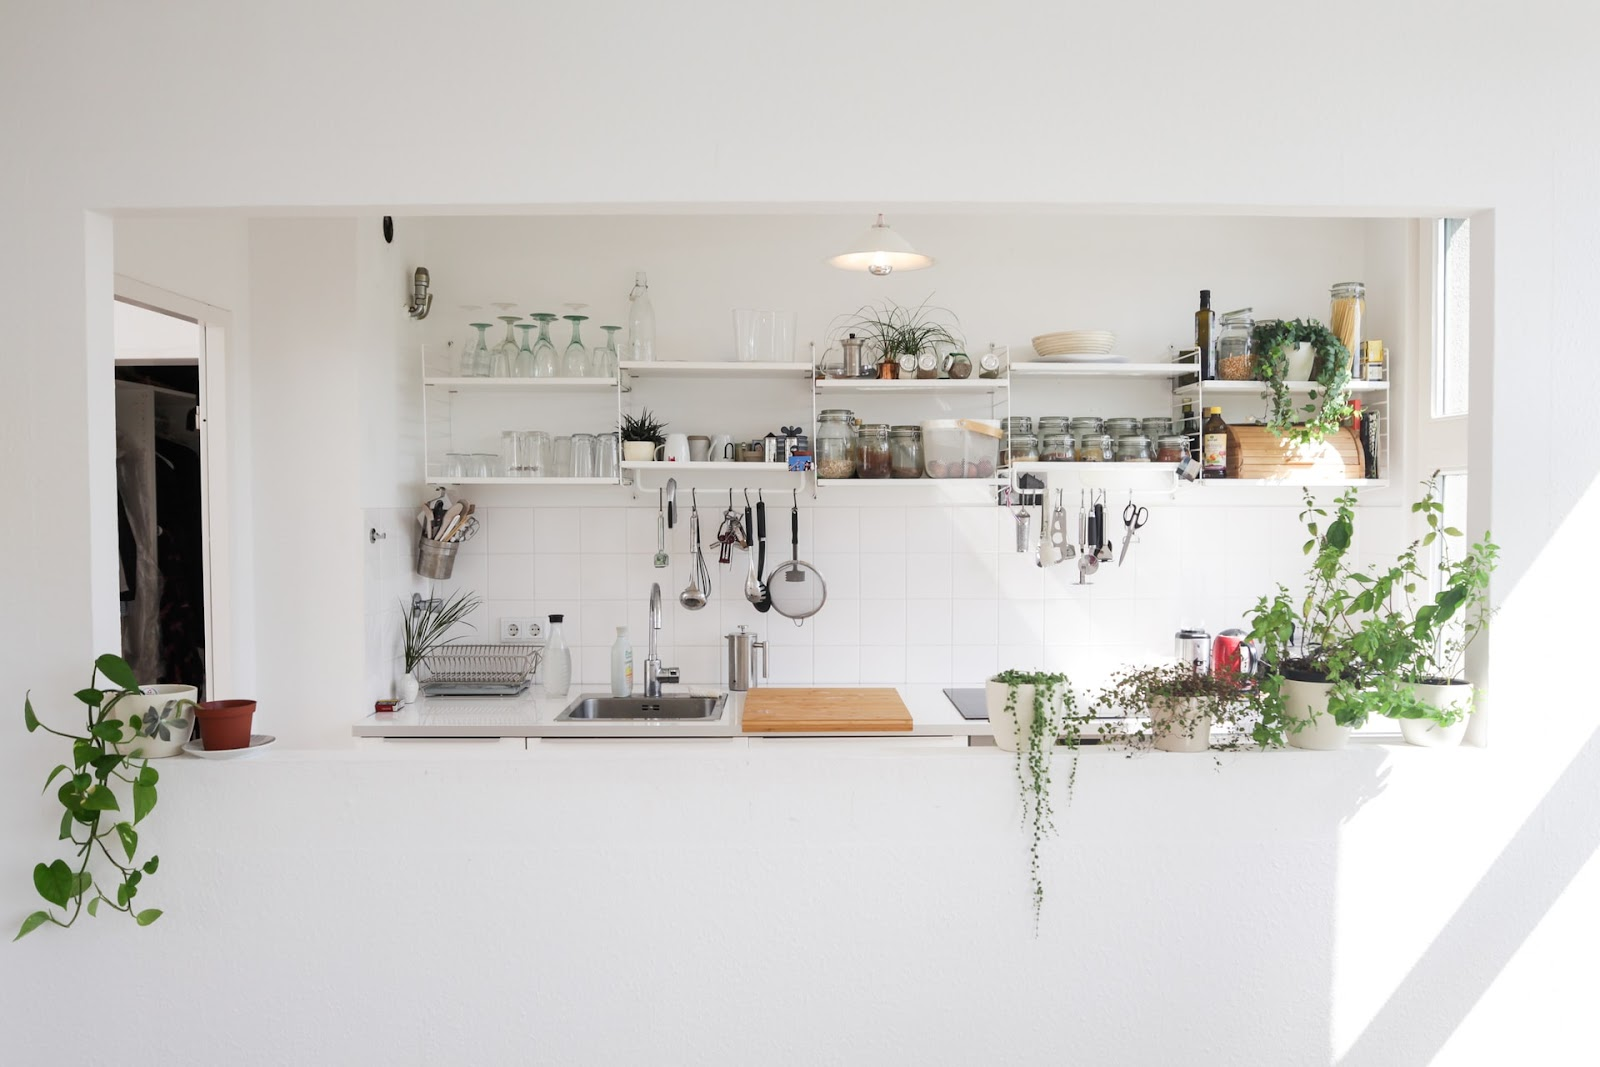 Sunlight streaming into the stark white kitchen from the window on the side making the room appear bright and roomy.